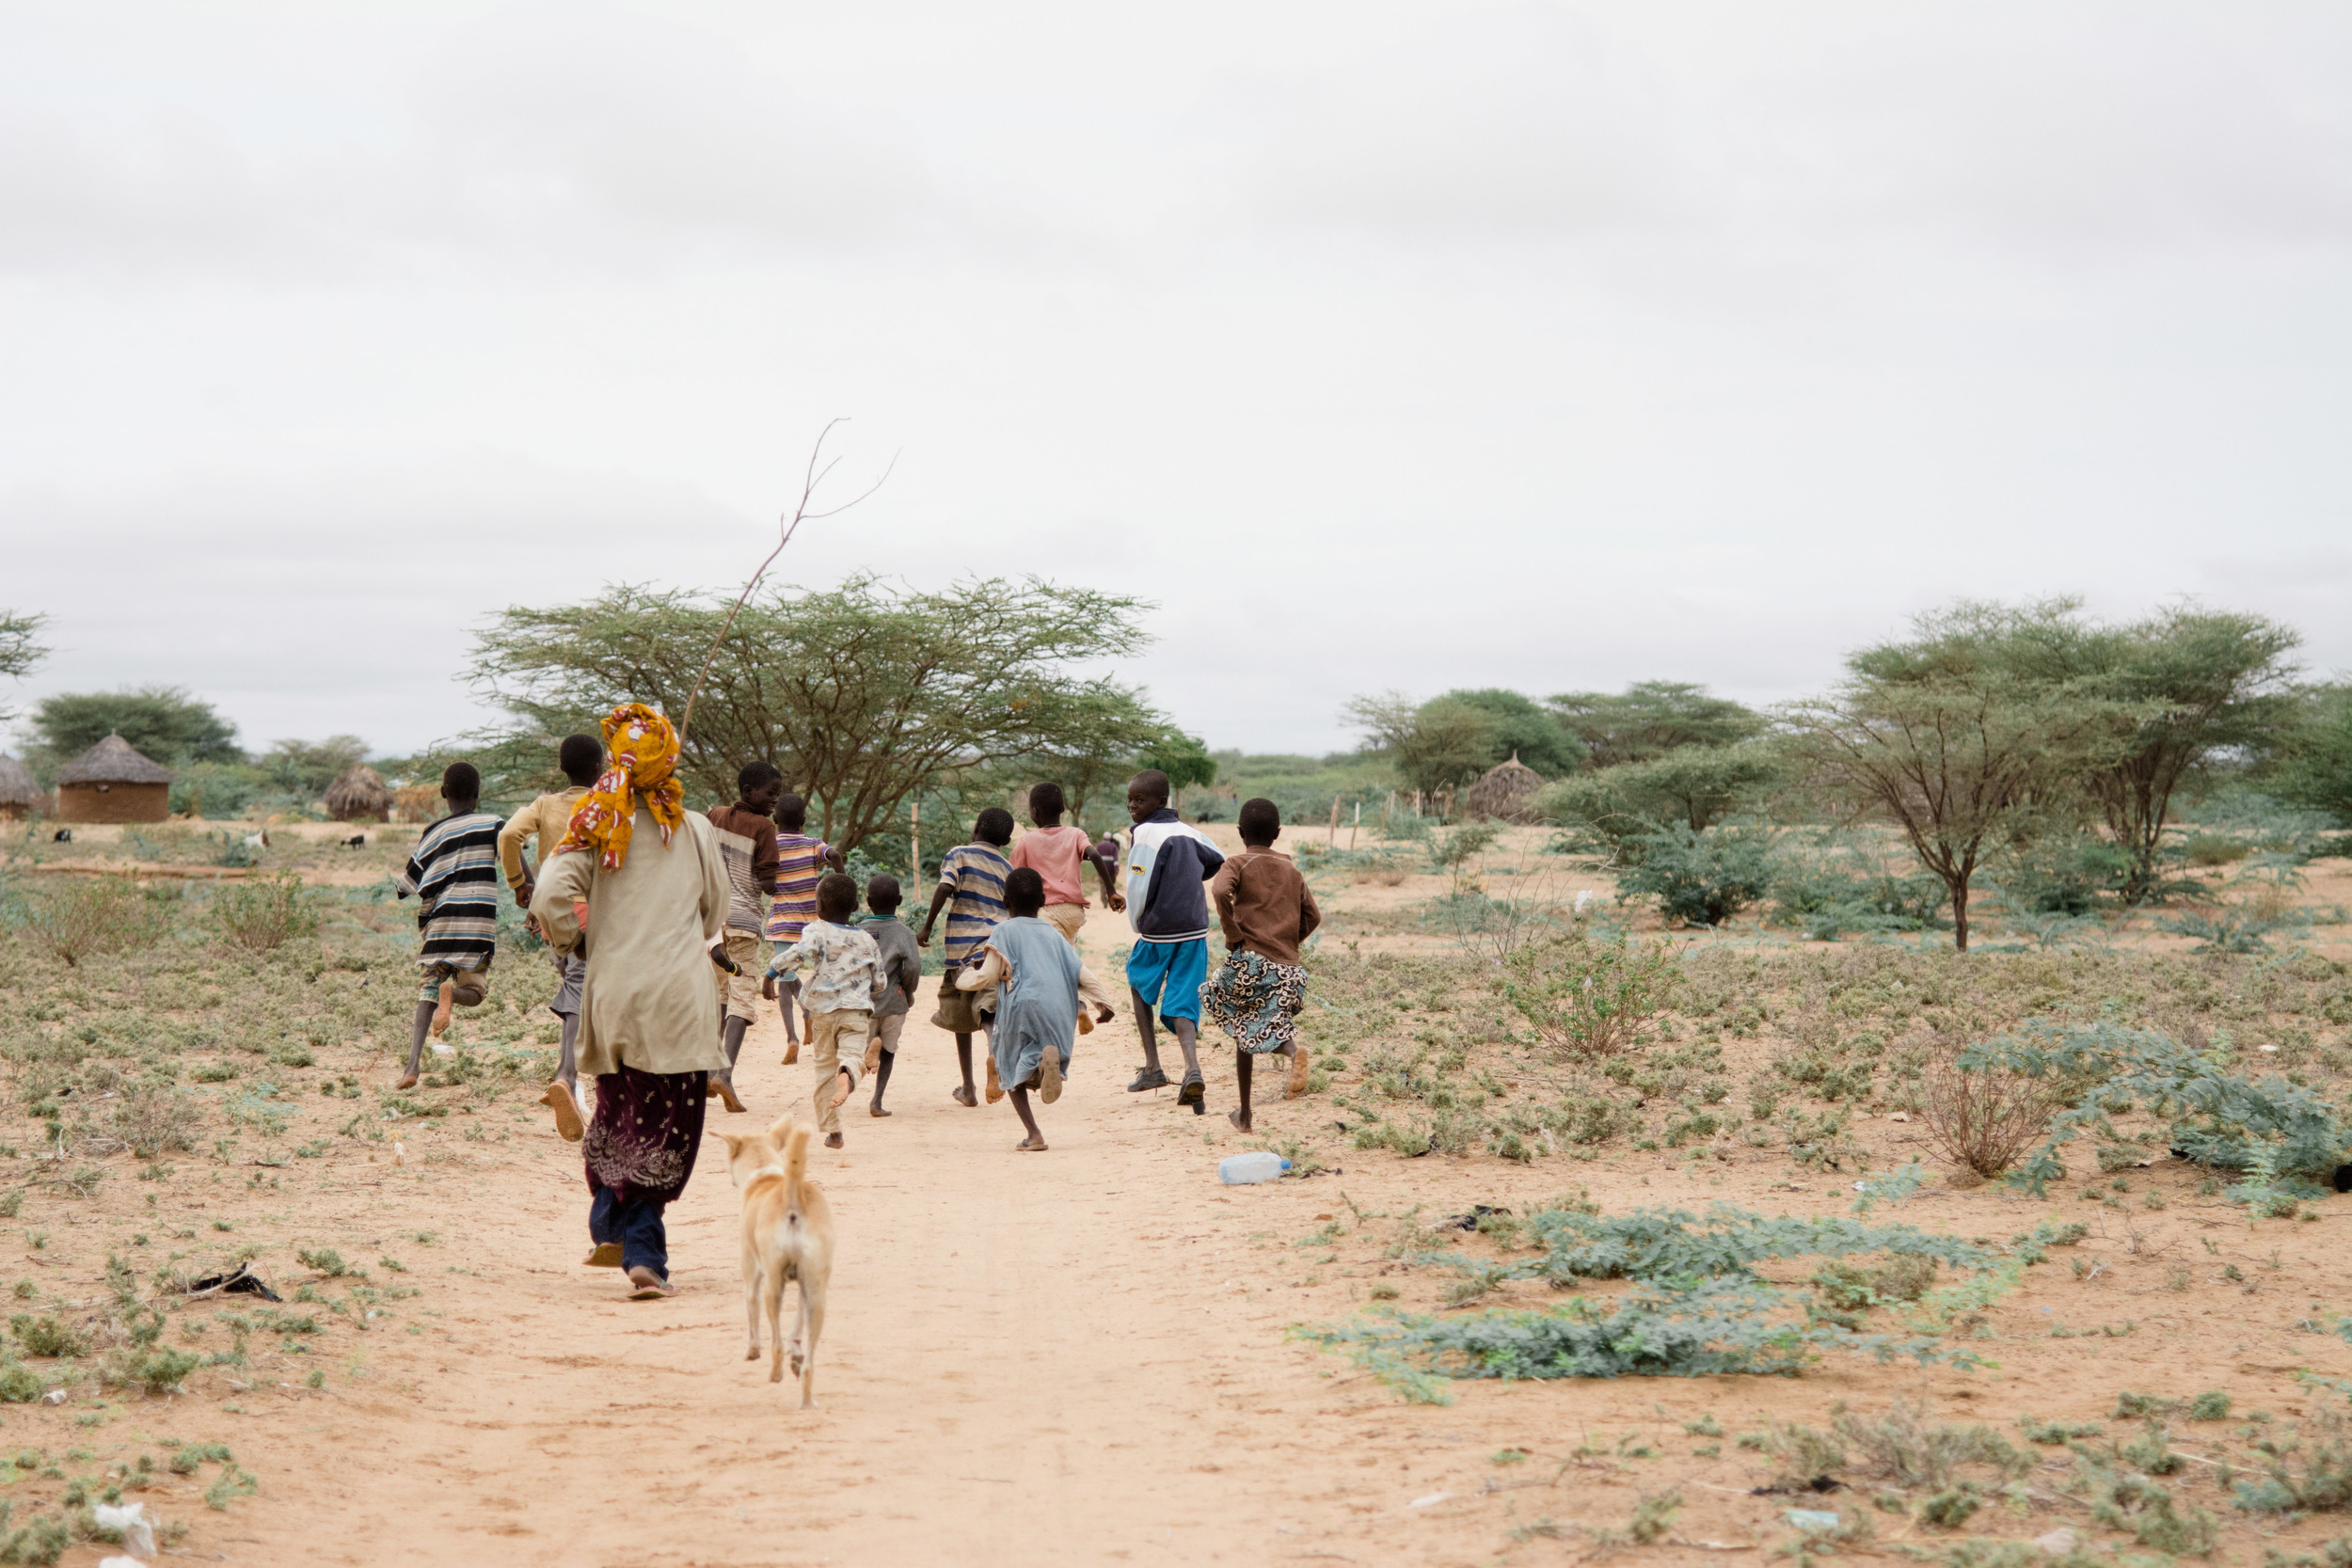 A woman chasing children back to school